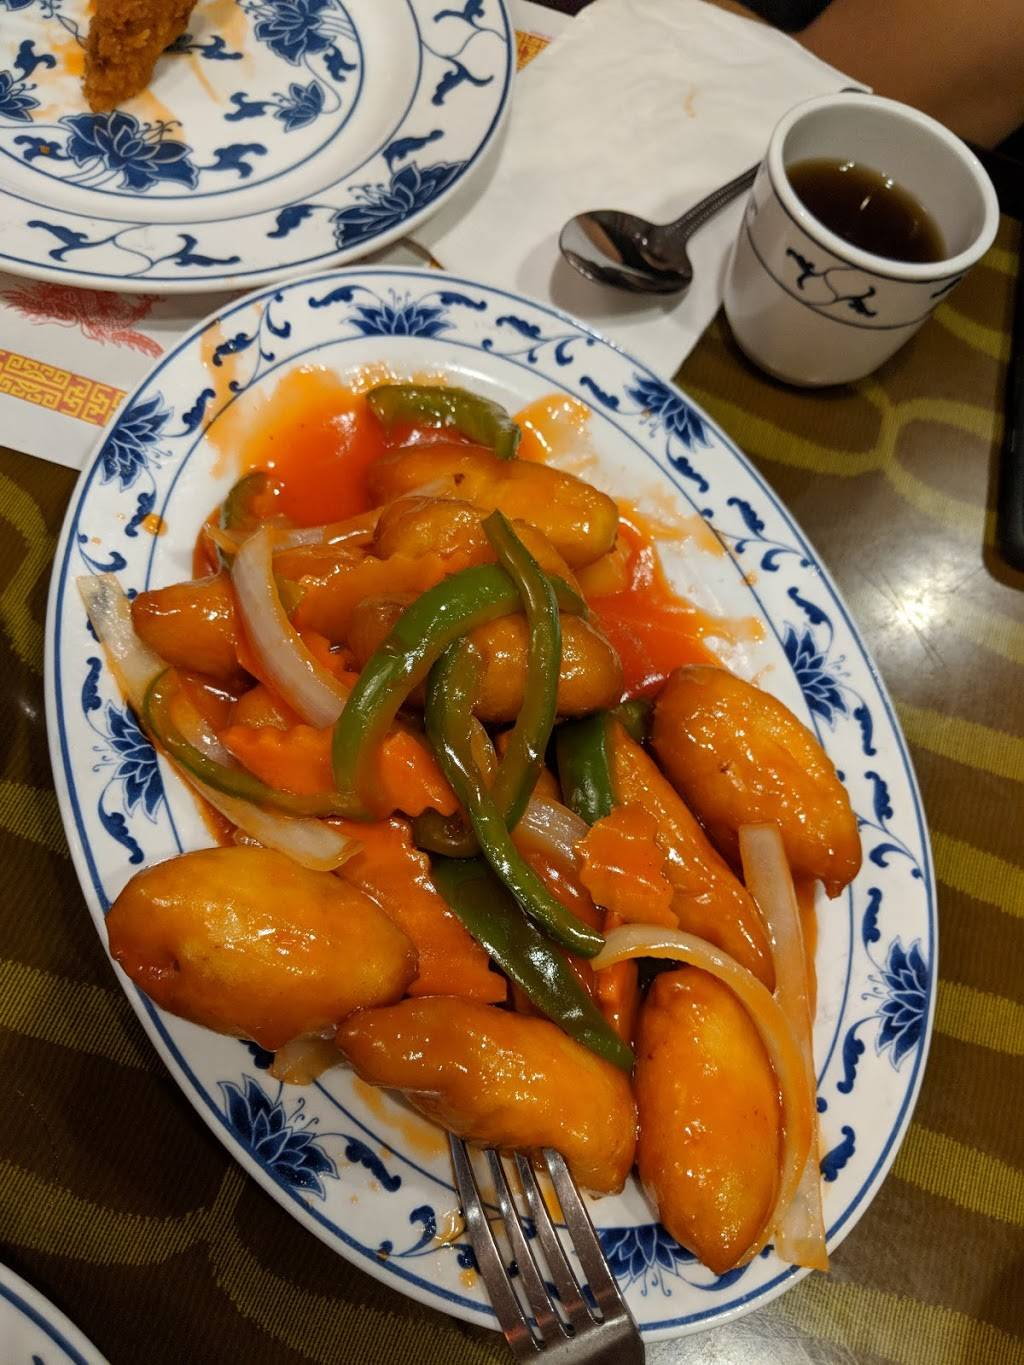 Chinese Musician | restaurant | 151 Greenpoint Ave, Brooklyn, NY 11222, USA | 7183832413 OR +1 718-383-2413